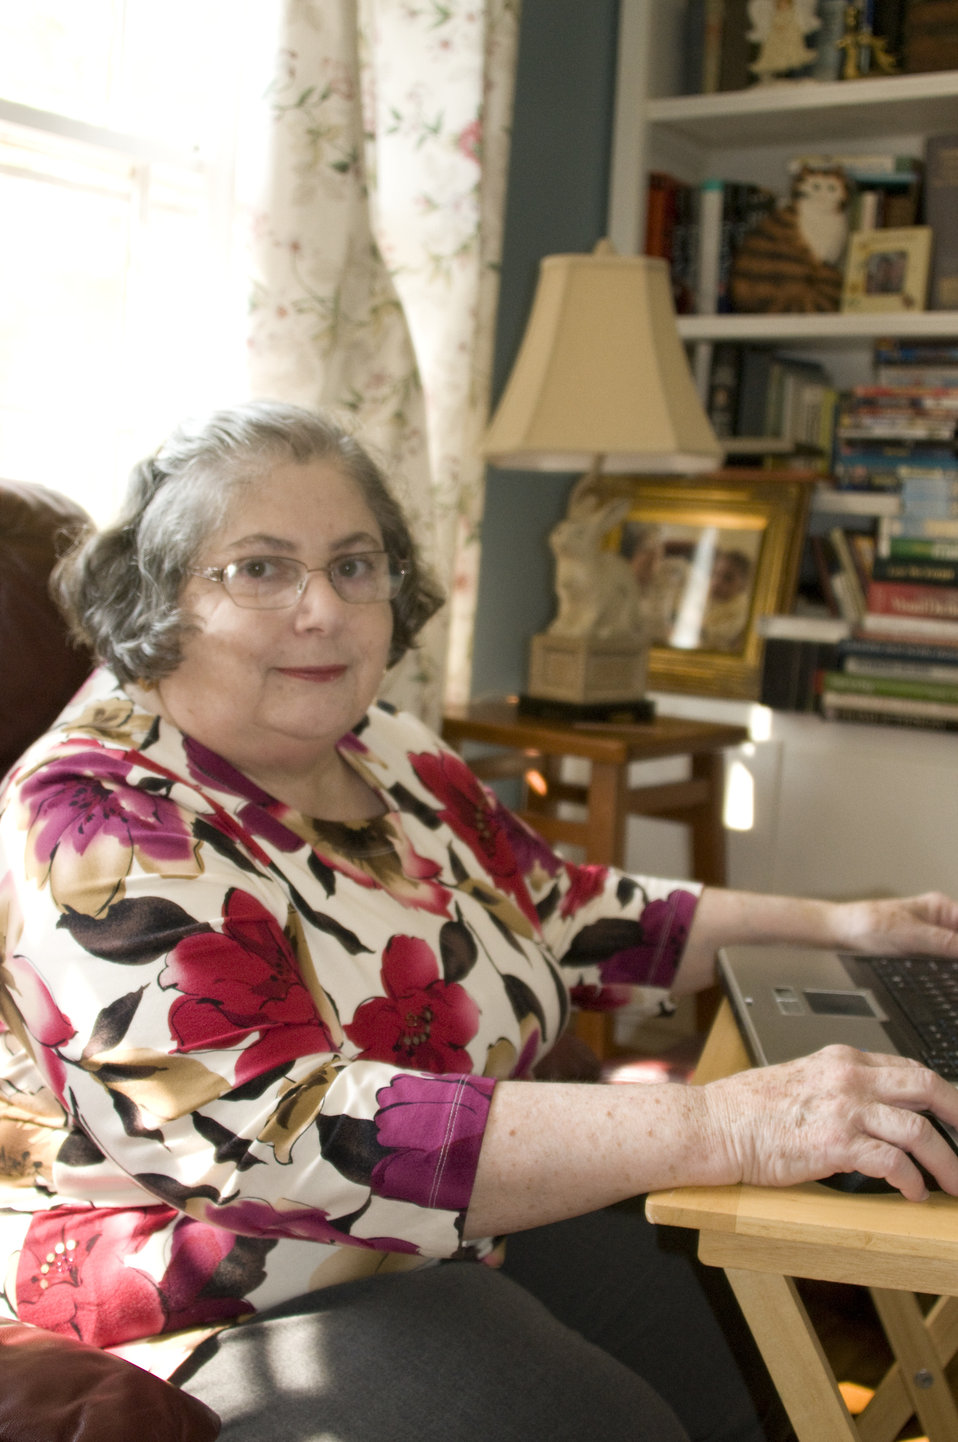 Seated at a small folding table, atop which was a laptop computer, this female rheumatoid arthritis patient was shown logging on to her work